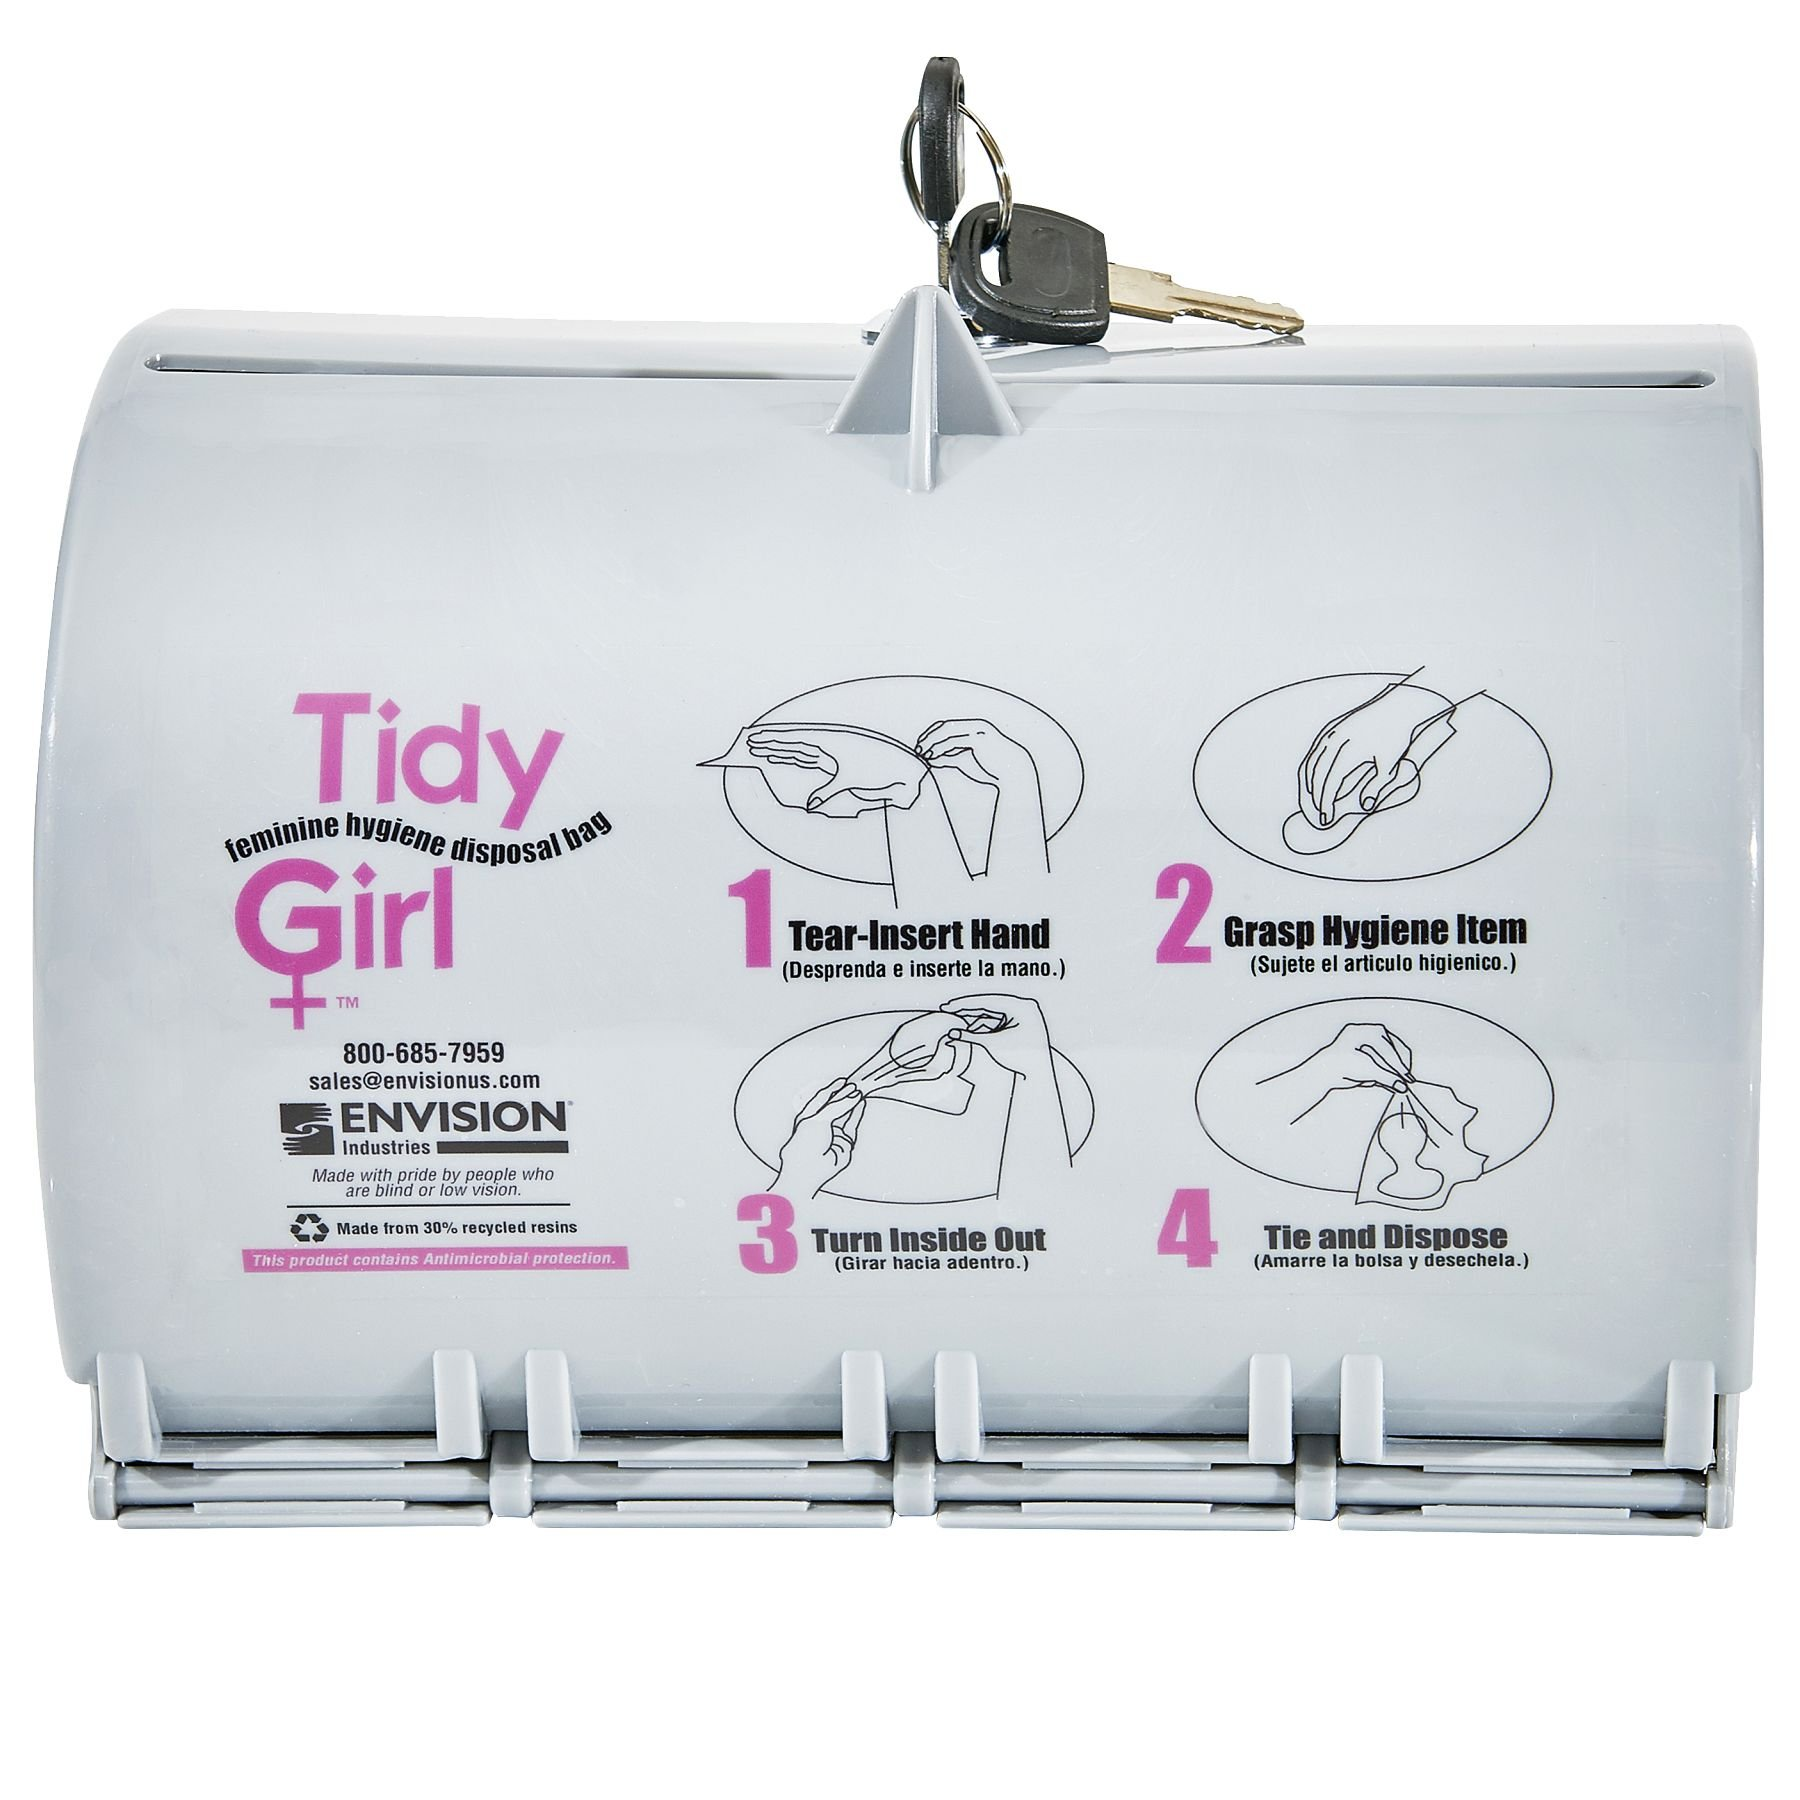 STOUT by Envision STO-TGUD-P TidyGirl Feminine Hygiene Disposal Bag Dispenser, Durable, Easy to Fill, Install, and Clean, Plastic, Gray